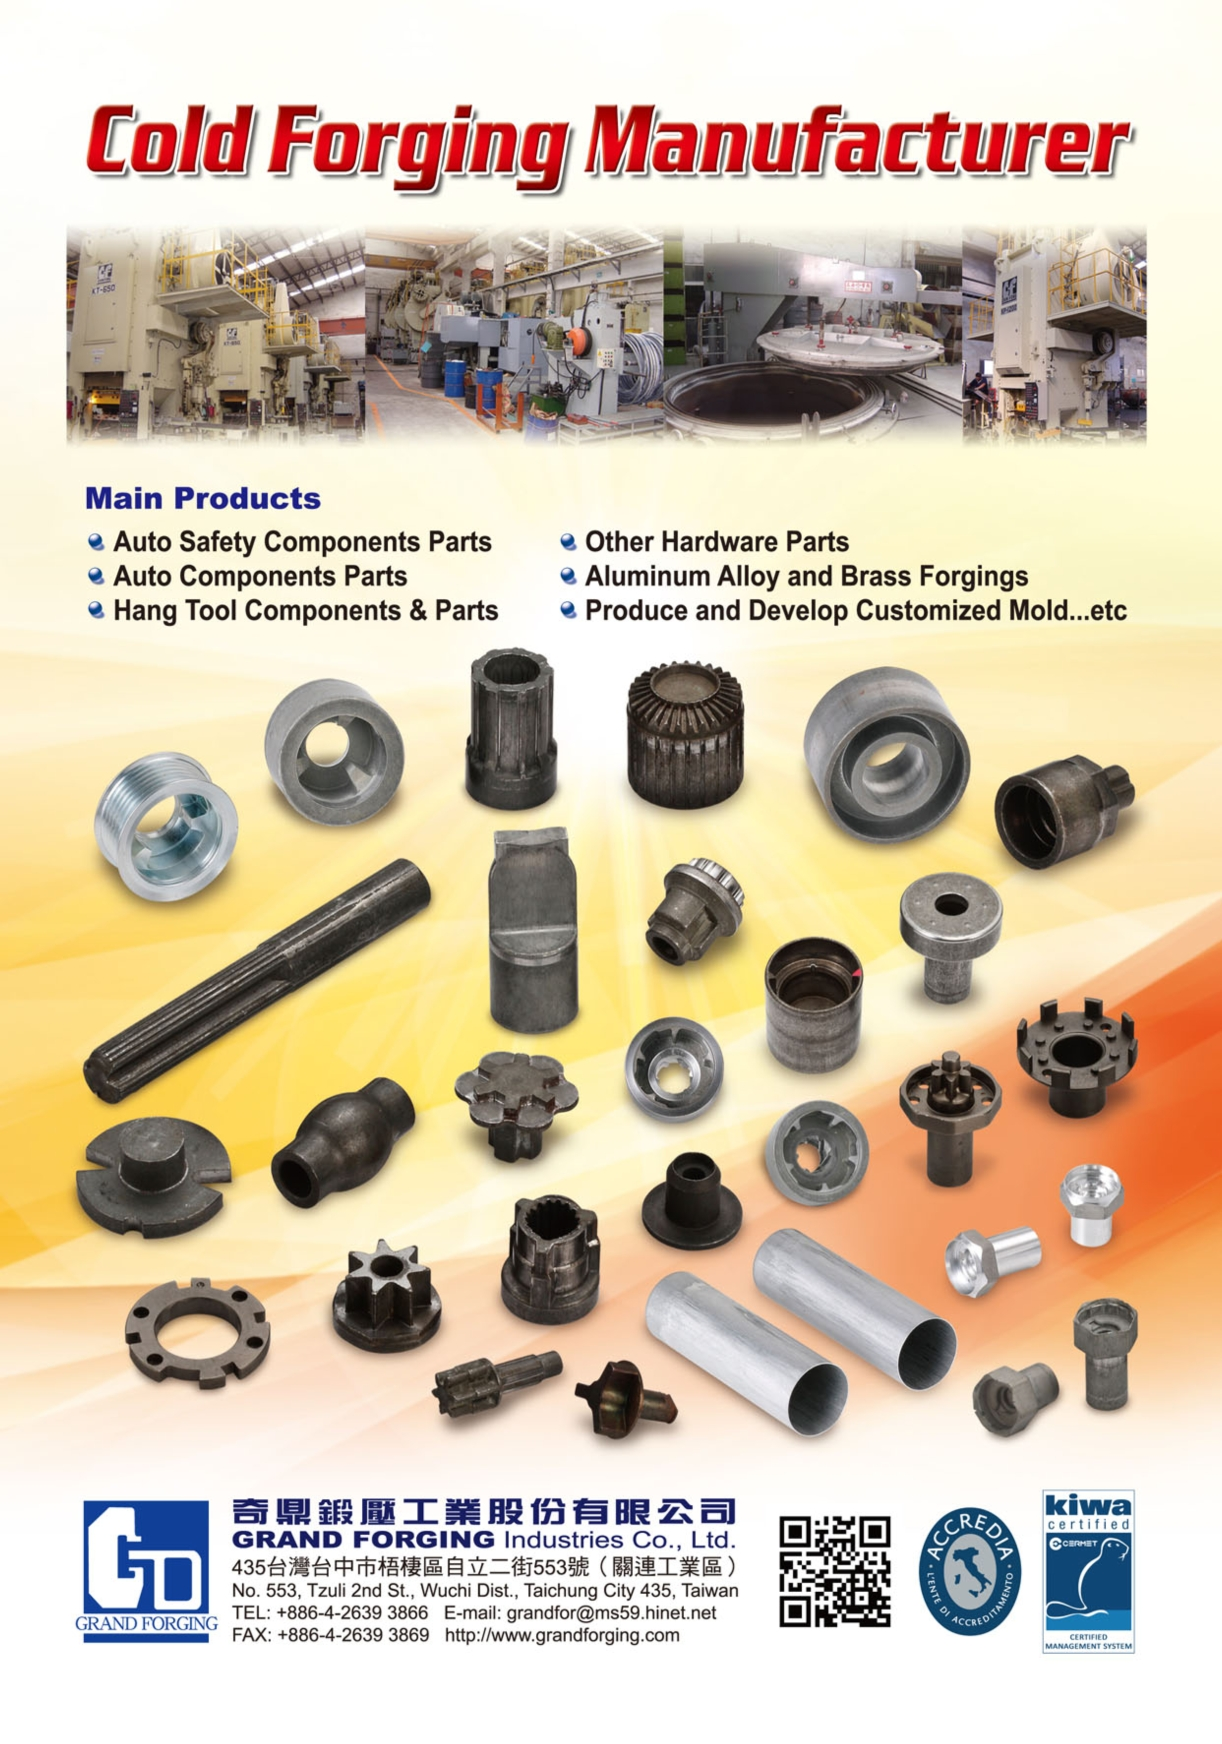 TTG-Taiwan Transportation Equipment Guide GRAND FORGING INDUSTRIES CO., LTD.